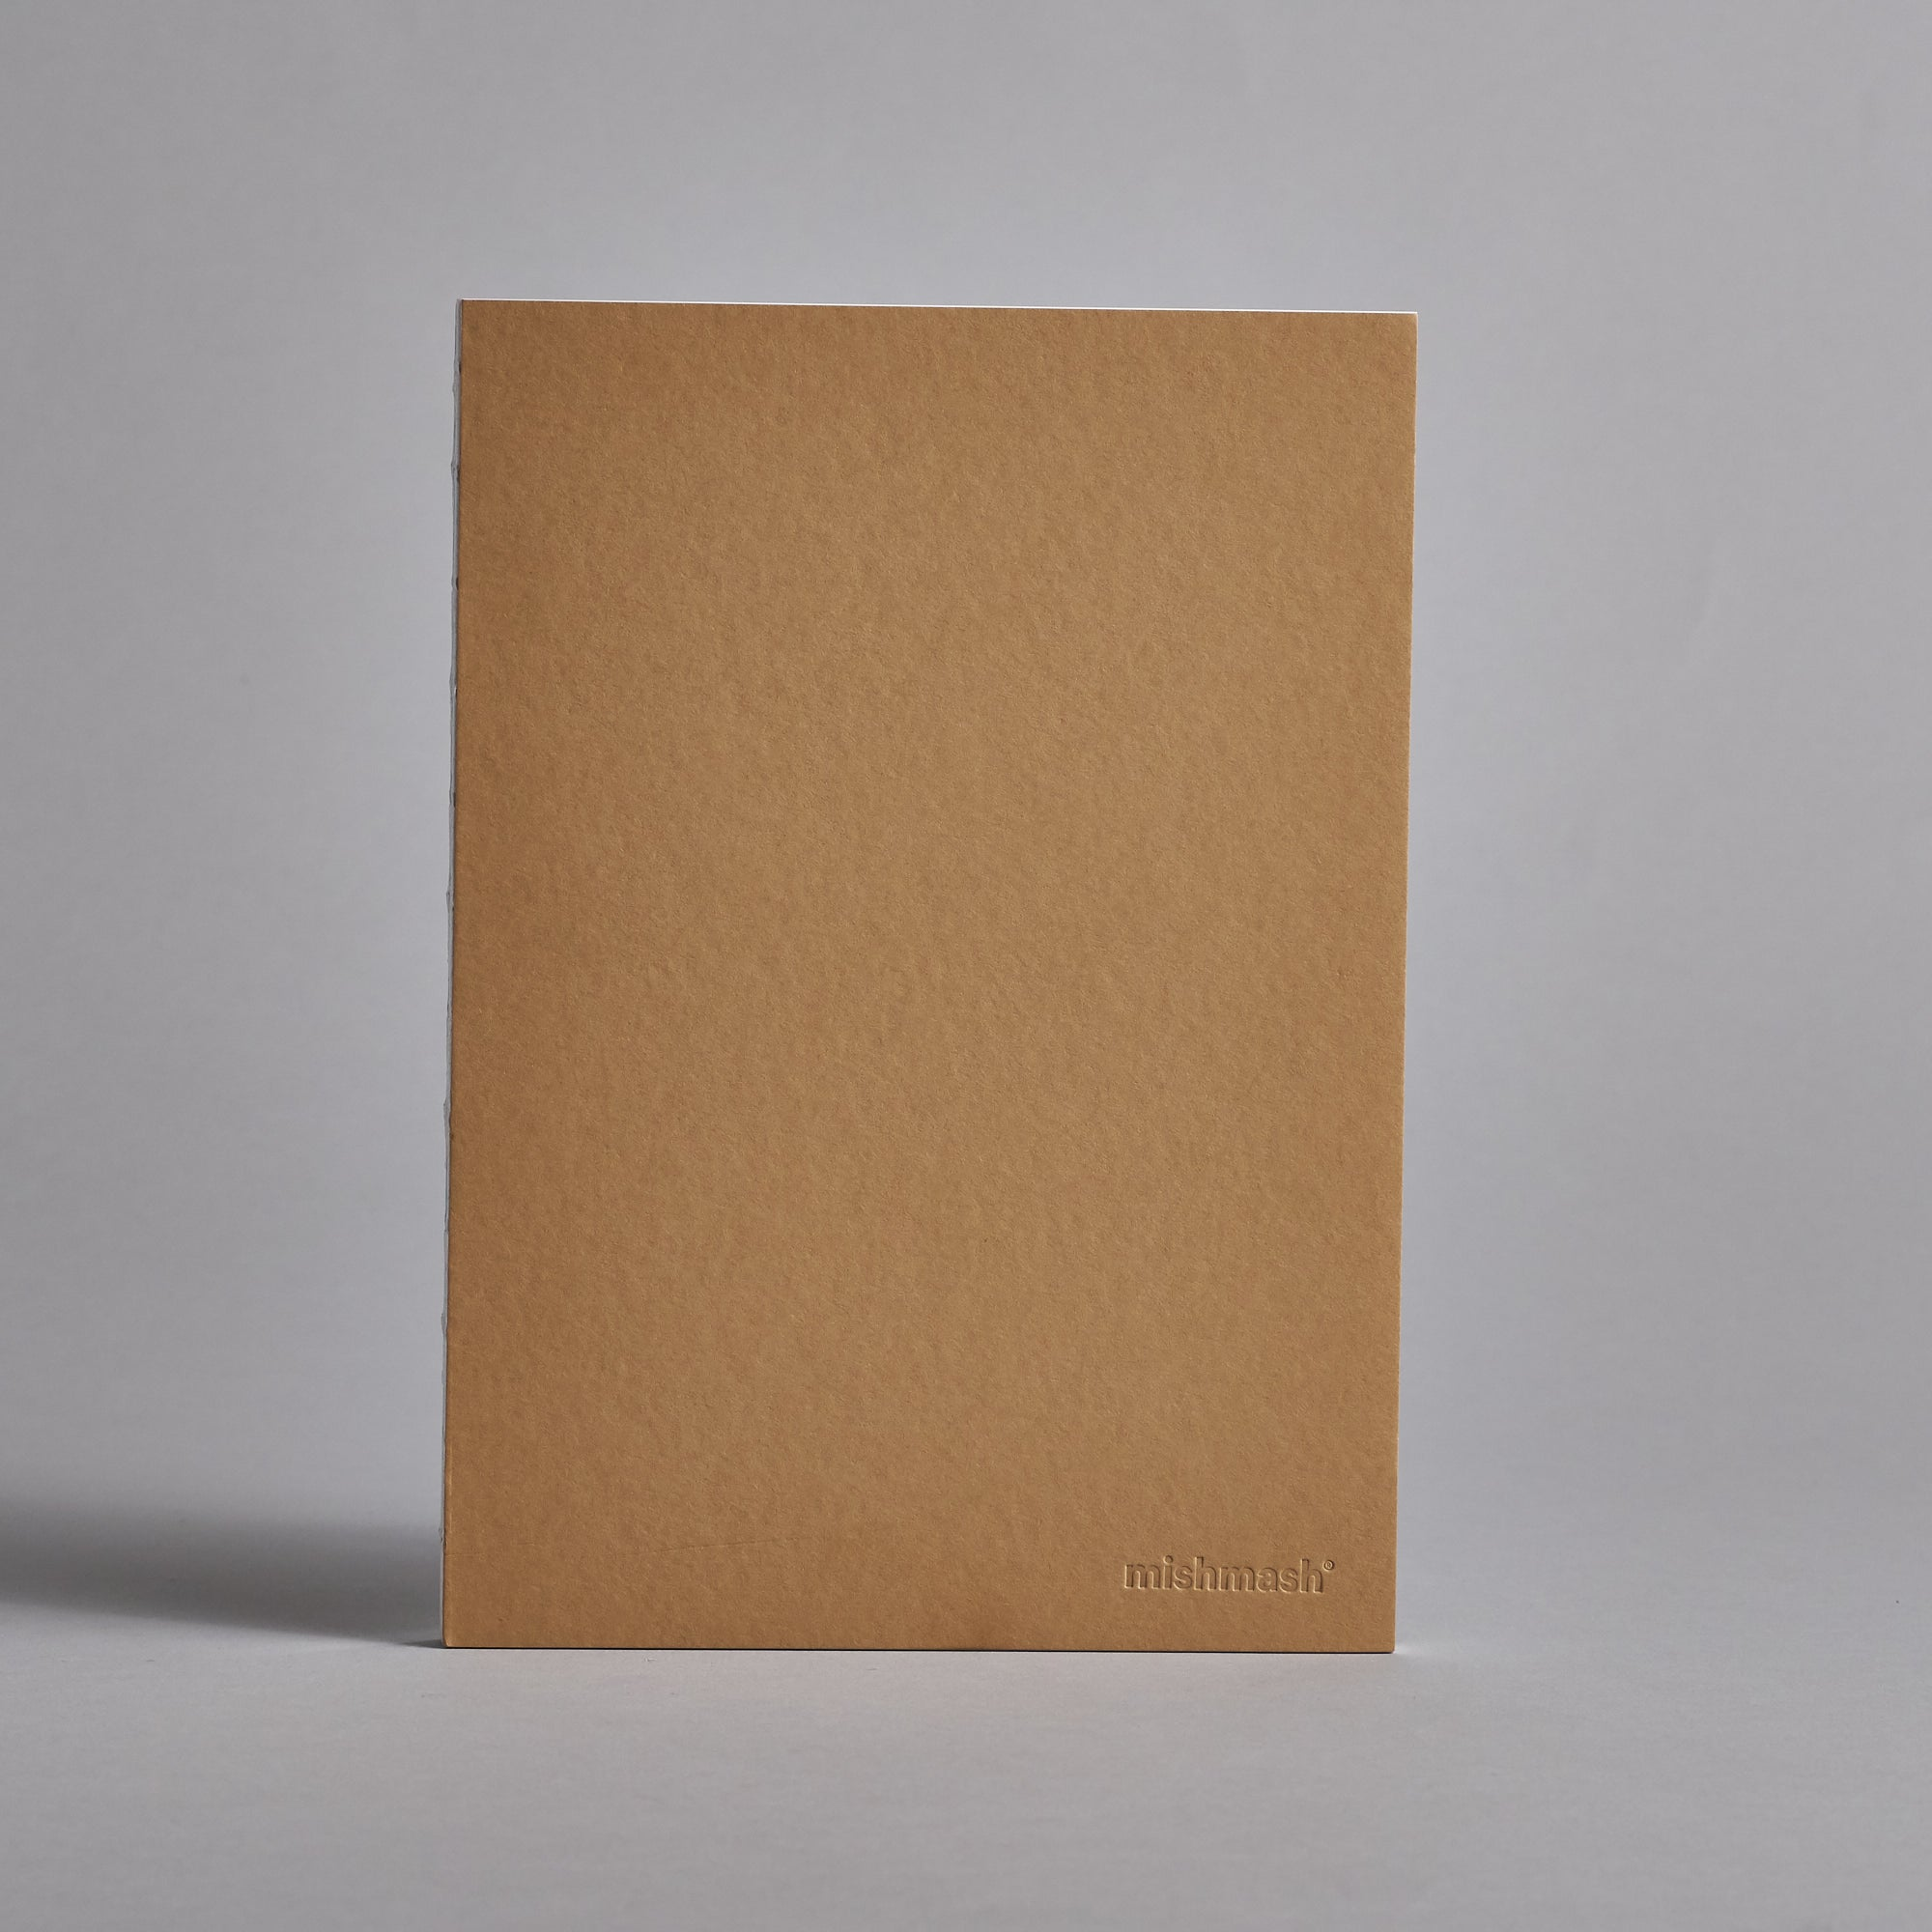 Hazel Mishmash Notebook